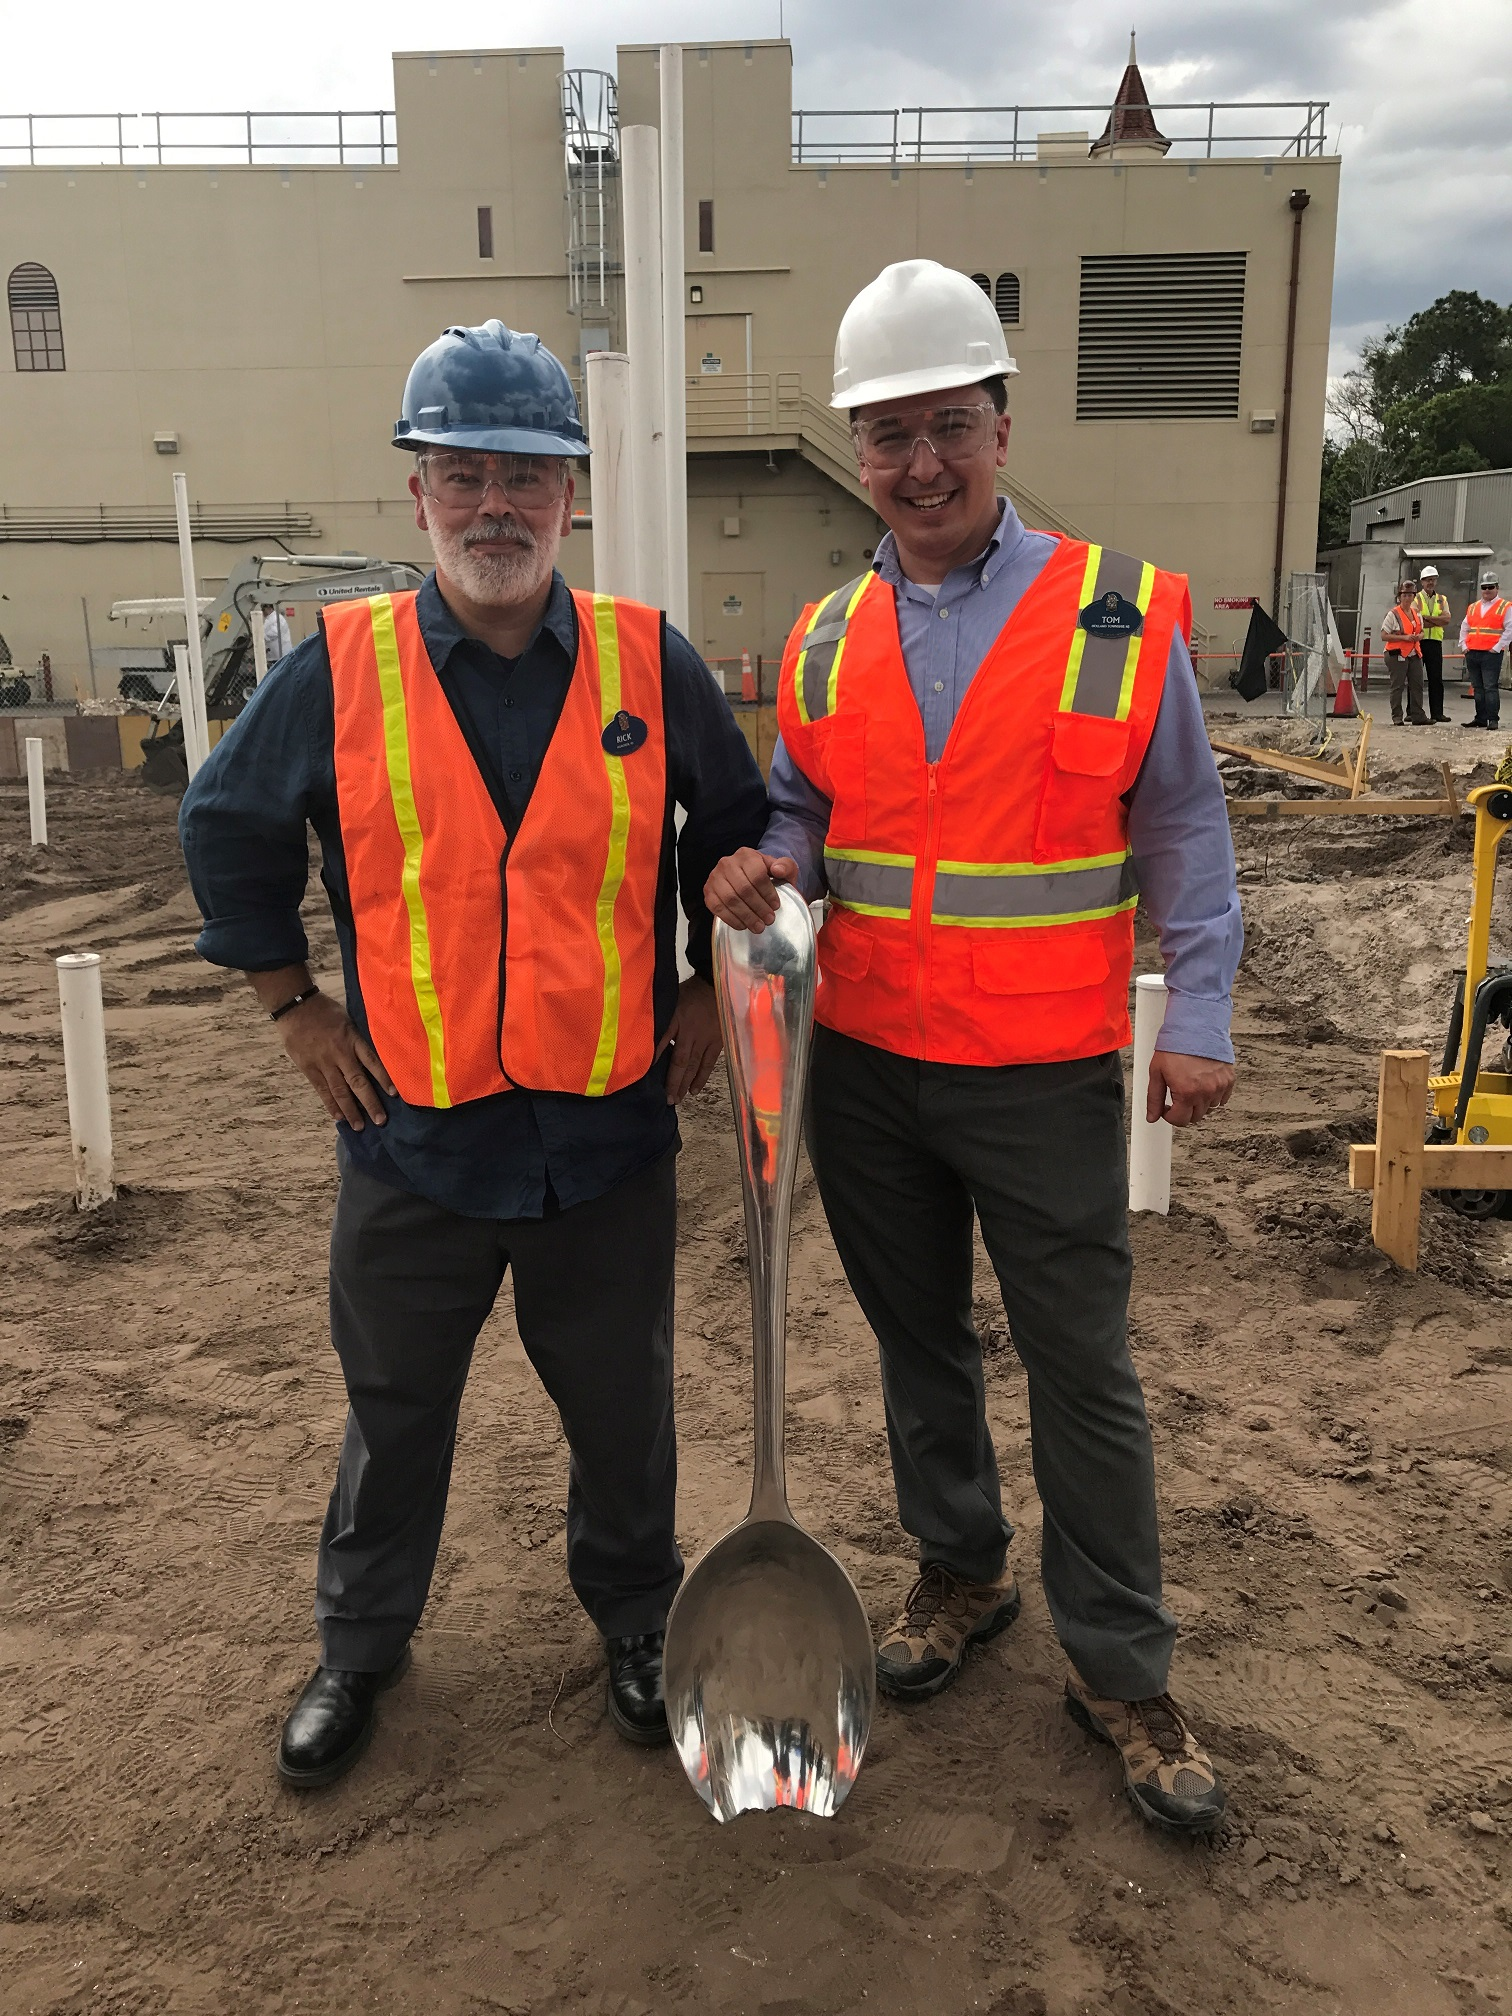 TOM (on right) Festival Kitchen Groundbreaking May 2017